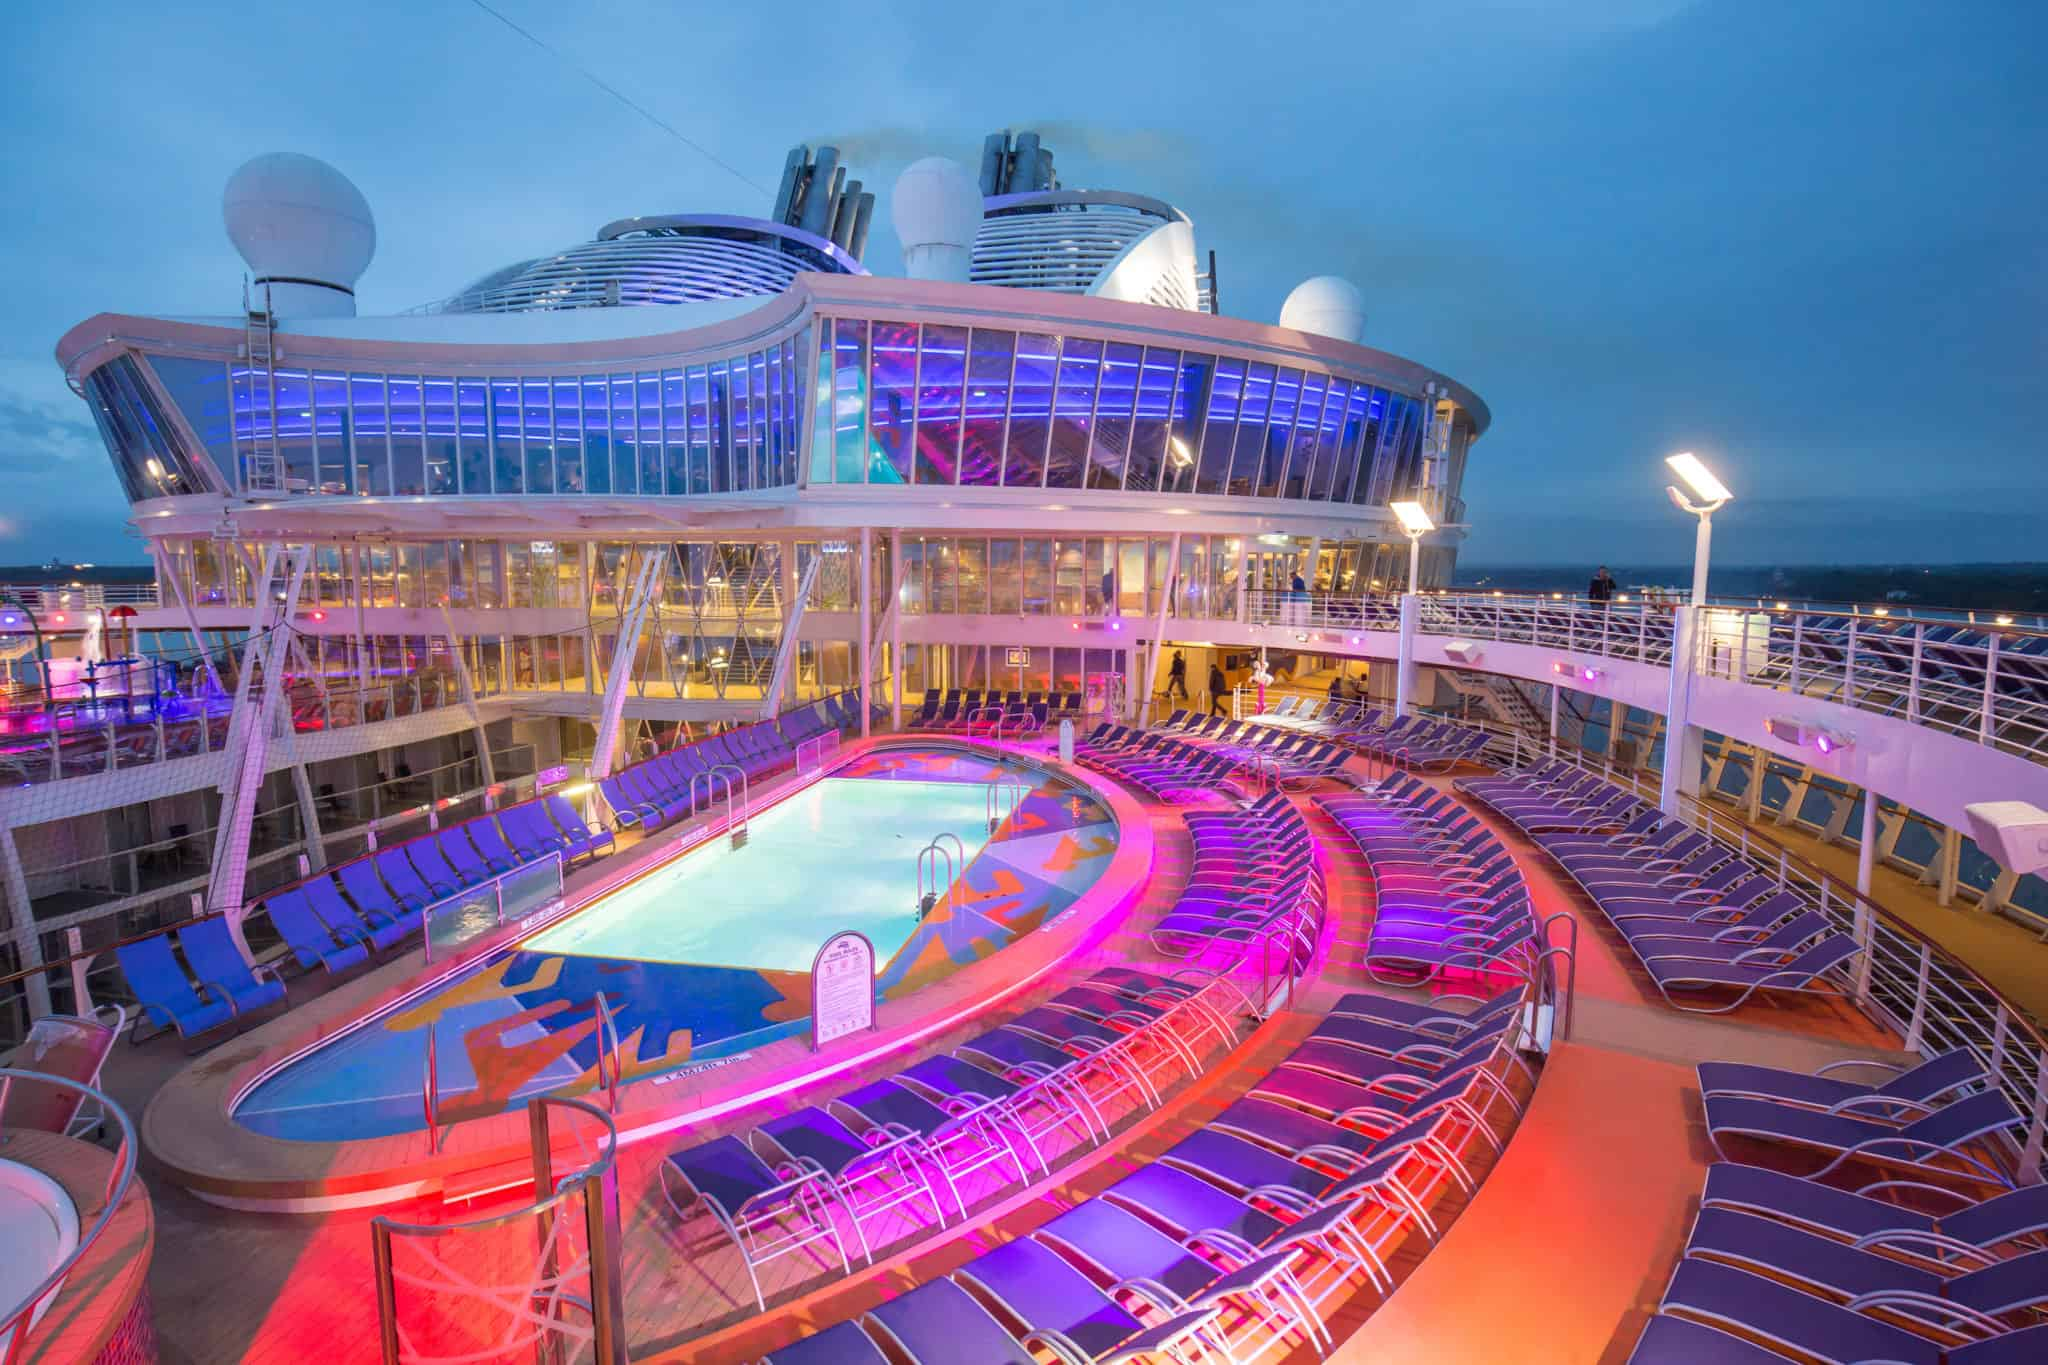 A Look Inside Photo Gallery Of Harmony Of The Seas